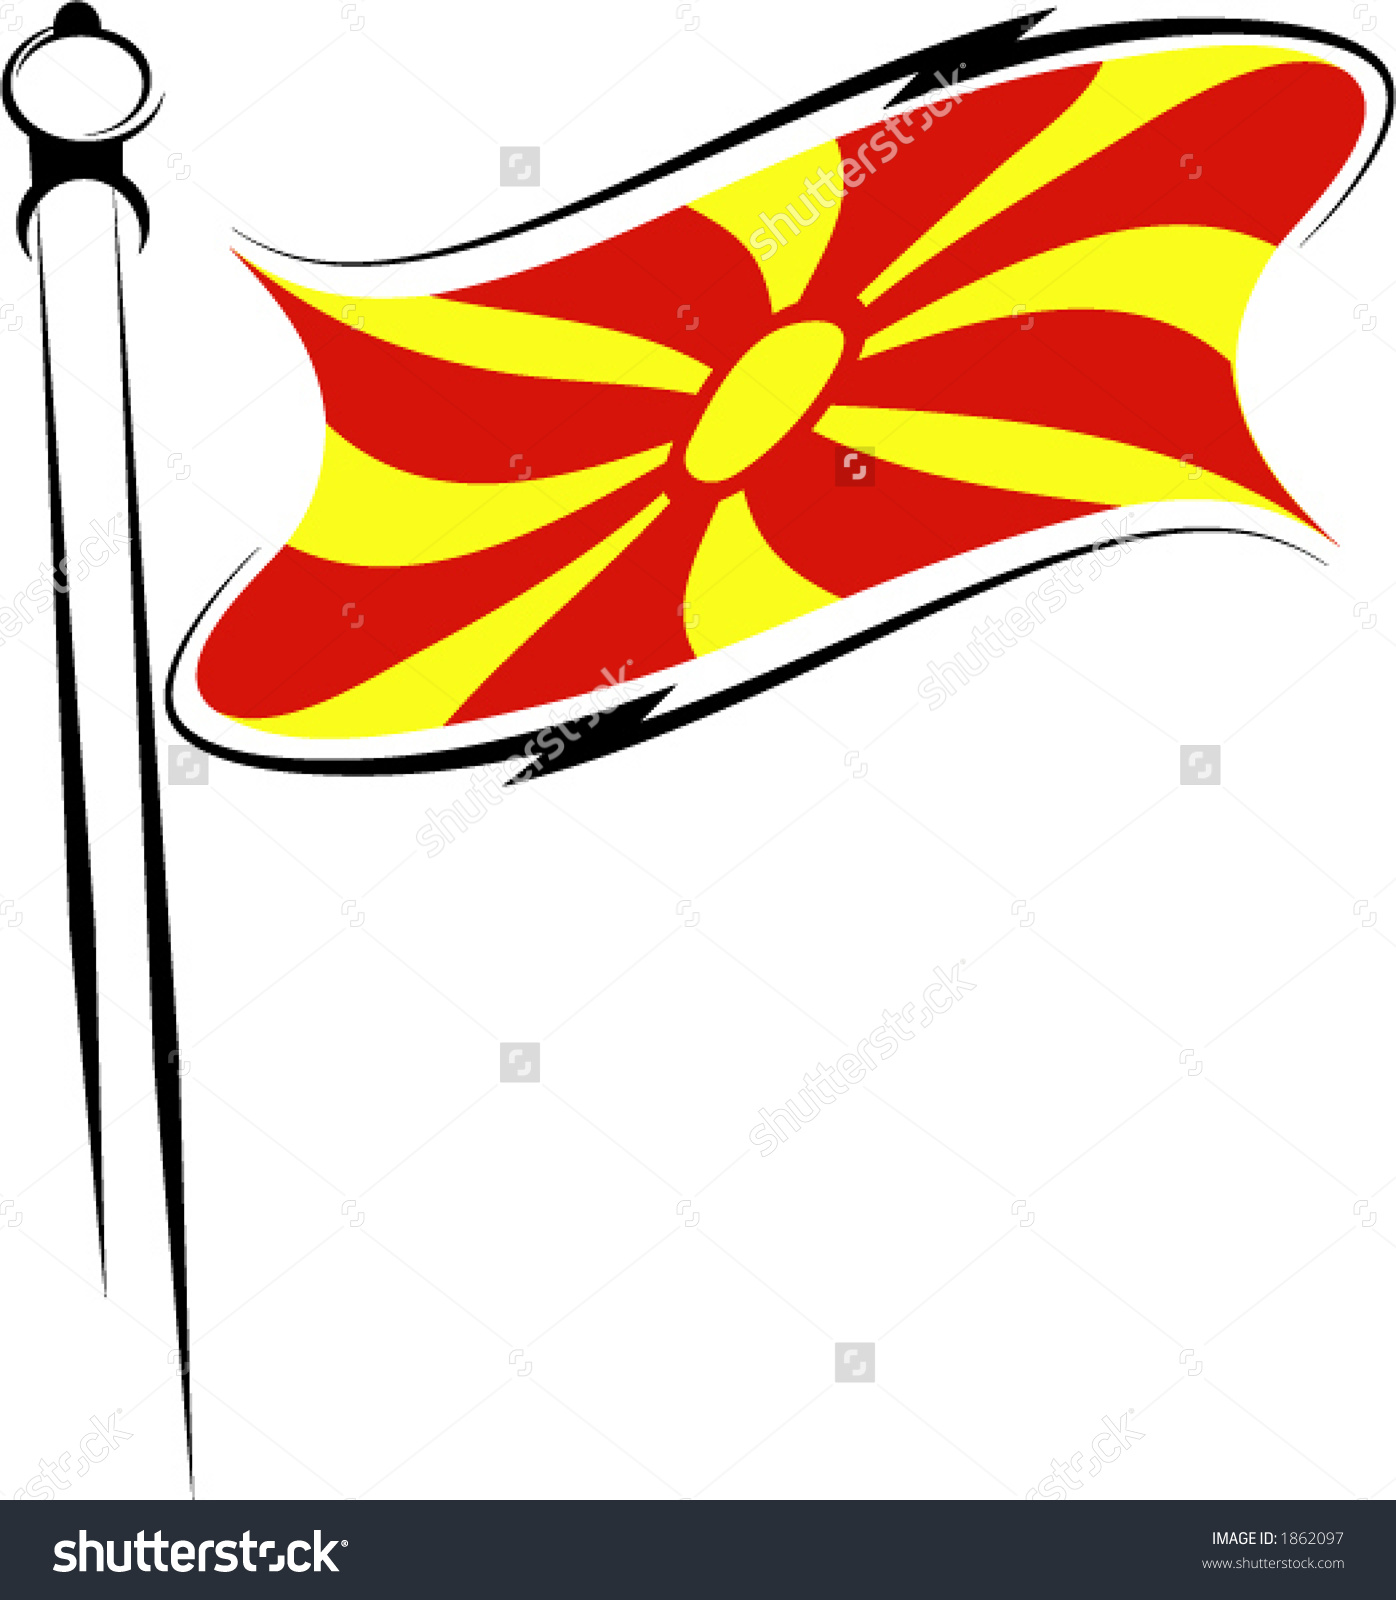 Images of Flag Of The Republic Of Macedonia   1396x1600